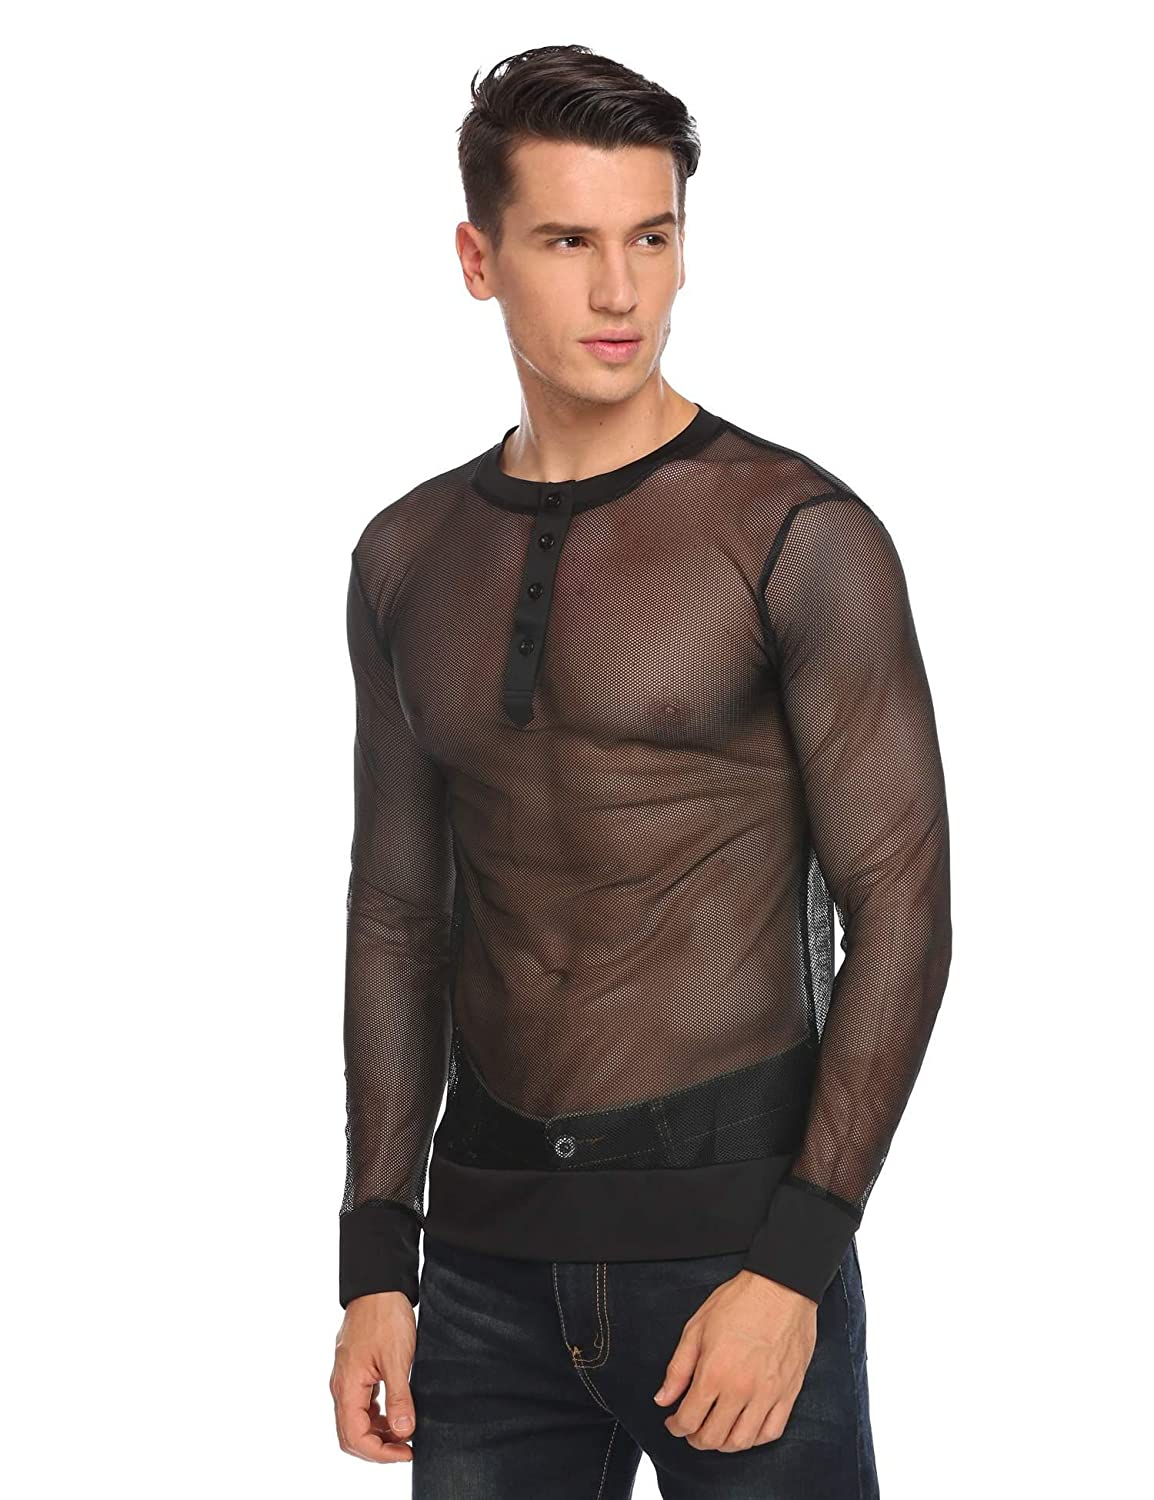 cb7a1a08479 SPECIAL FEATURES--mens sexy tops is designed with Sexy full Fishnet design